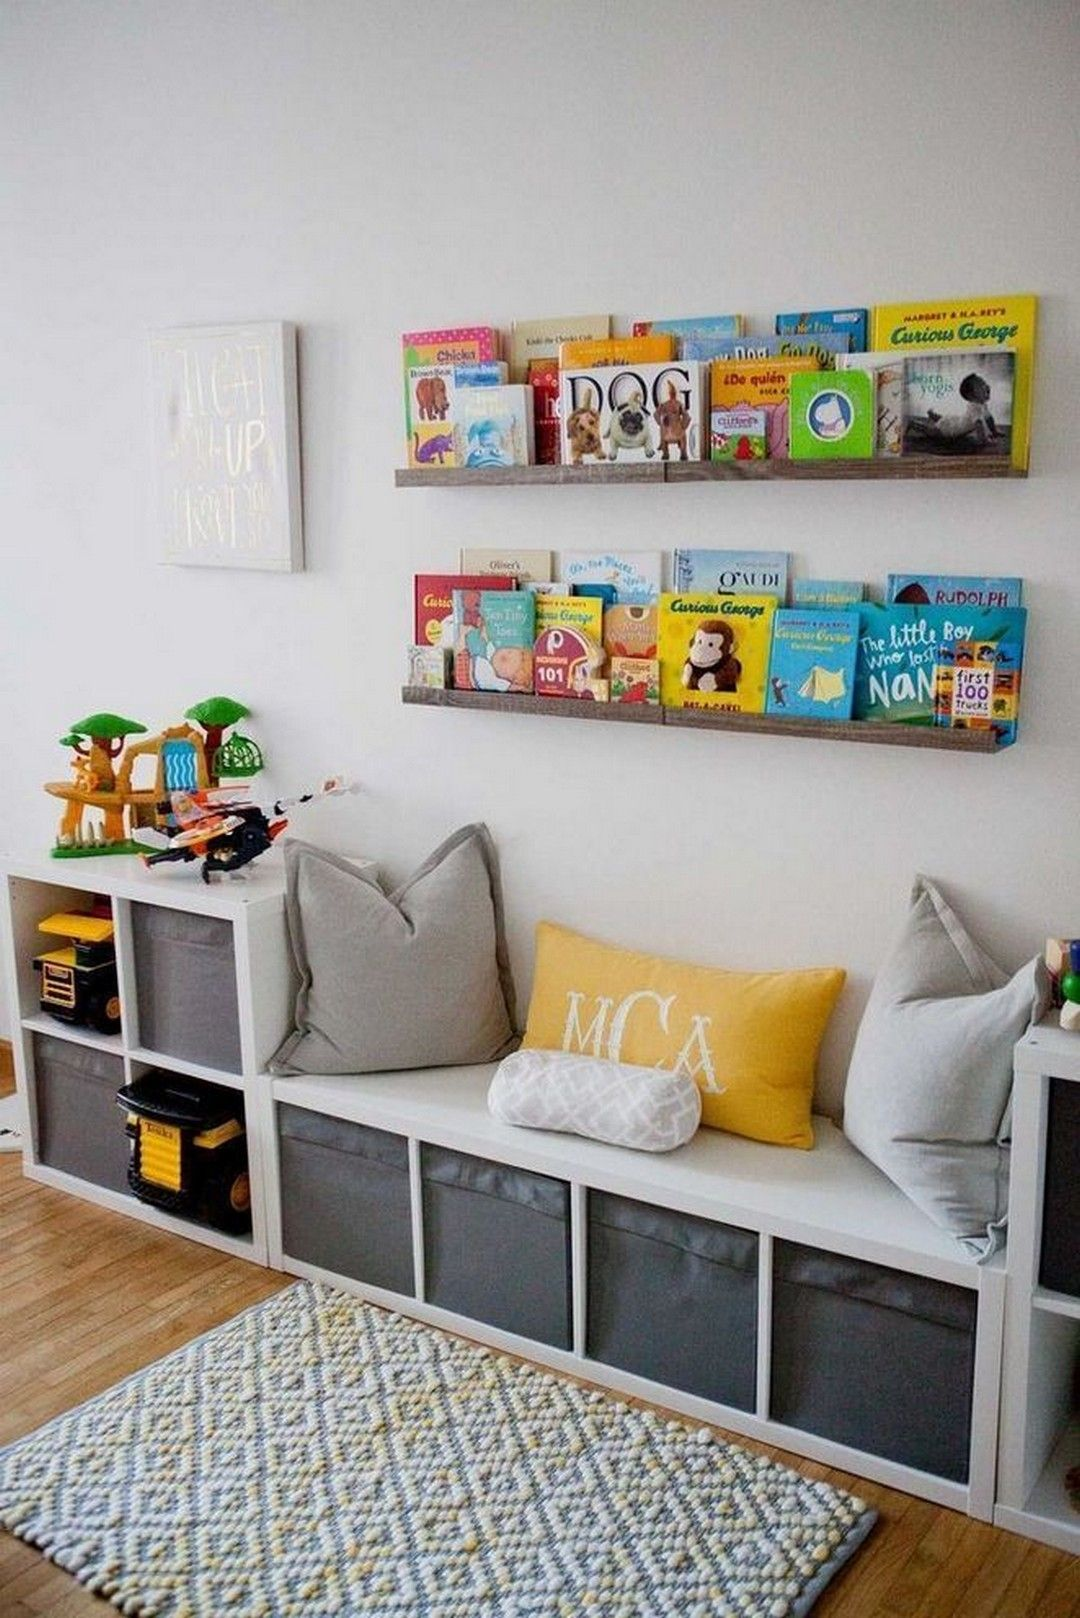 32 Great storage ideas for a kids room images